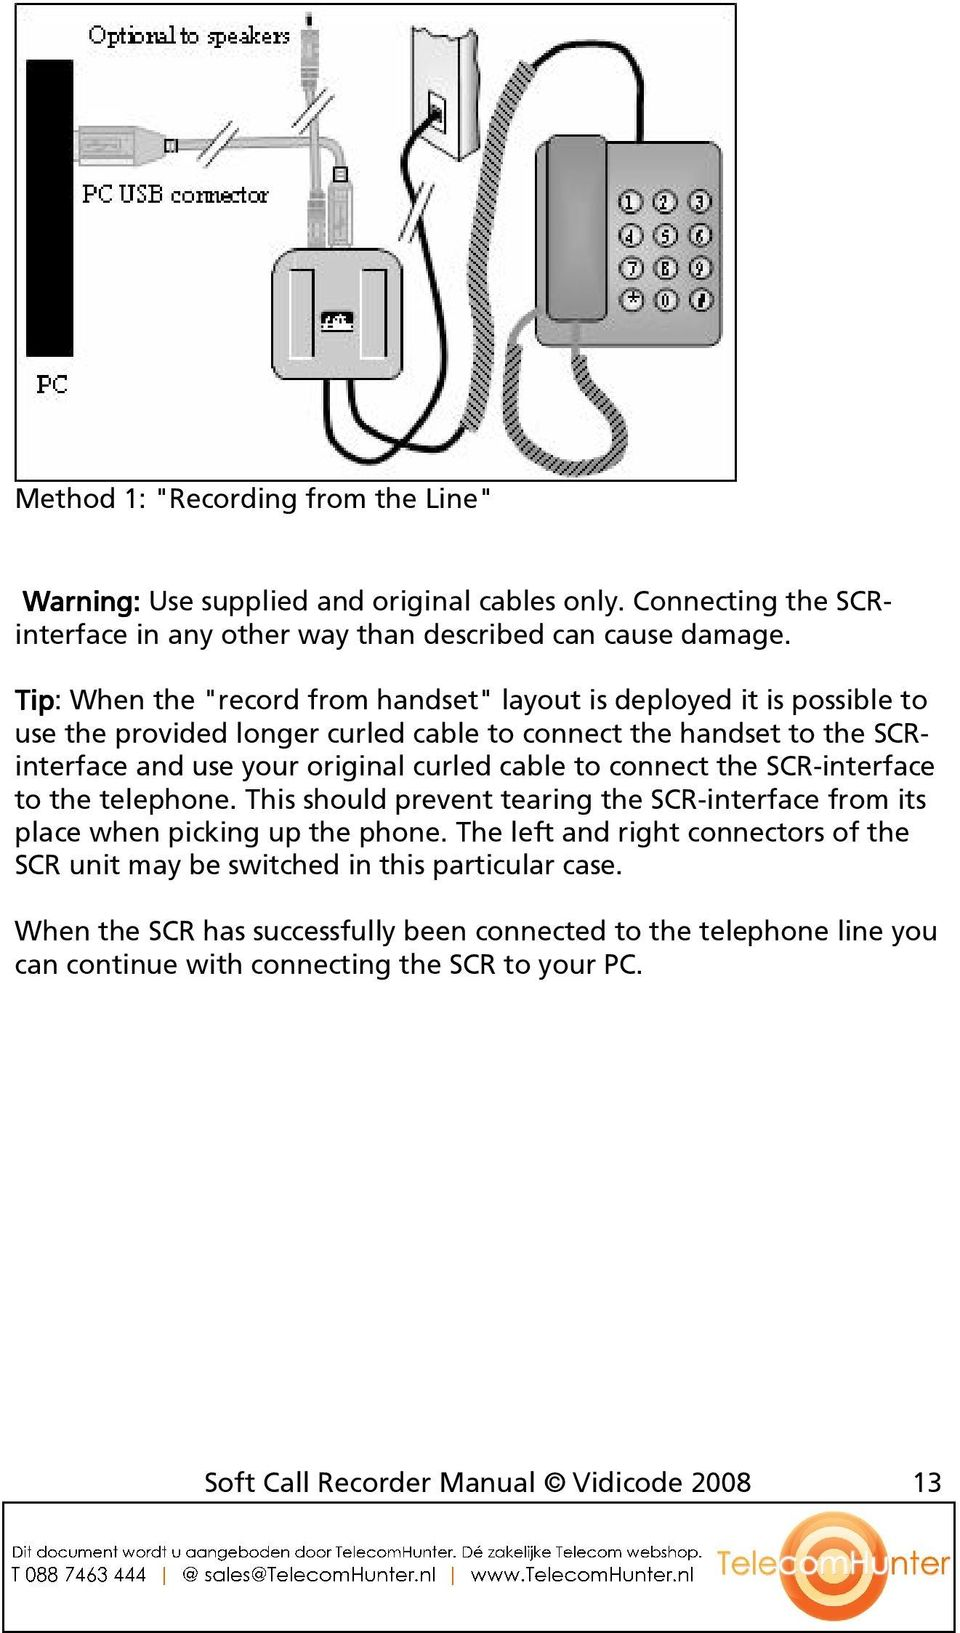 cable to connect the SCR-interface to the telephone. This should prevent tearing the SCR-interface from its place when picking up the phone.